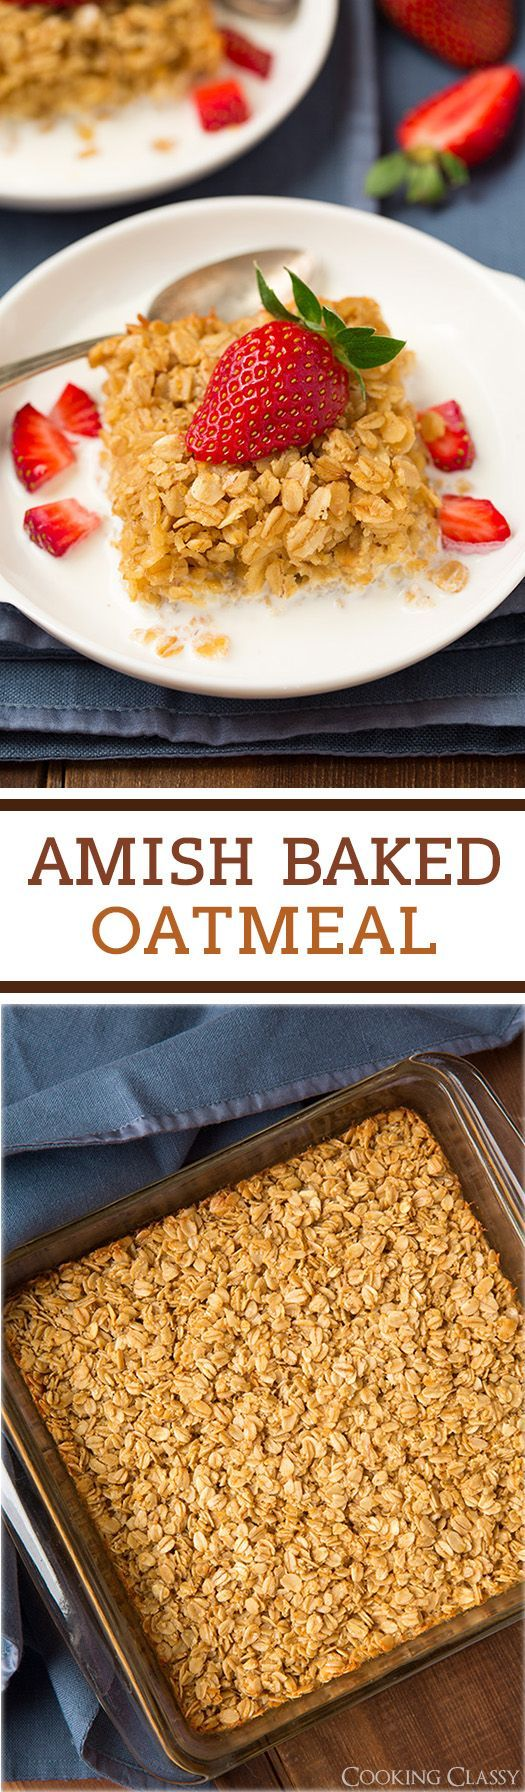 Amish Baked Oatmeal - my new favorite way to make oatmeal! Delicious!